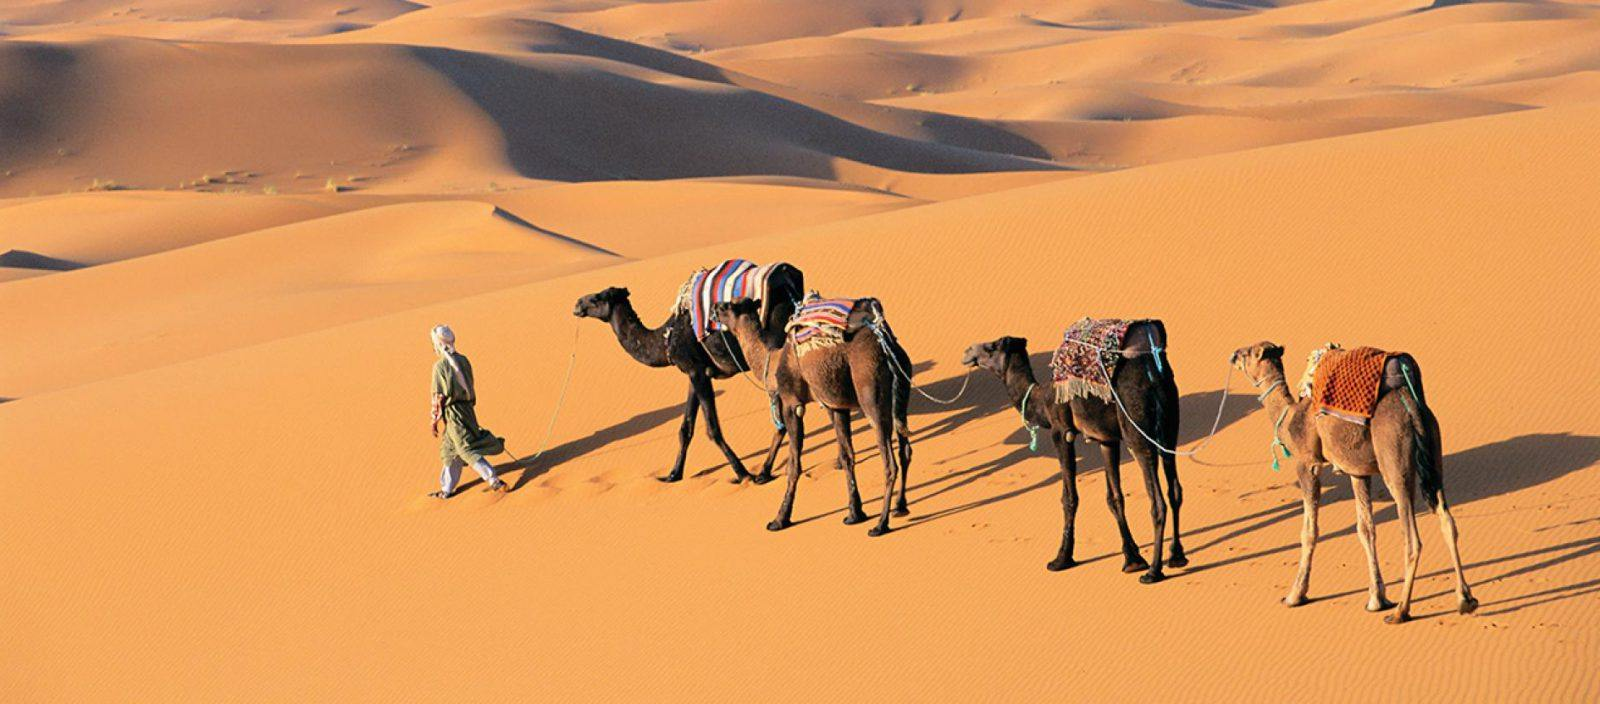 Morocco: Legendary Cities and the Sahara